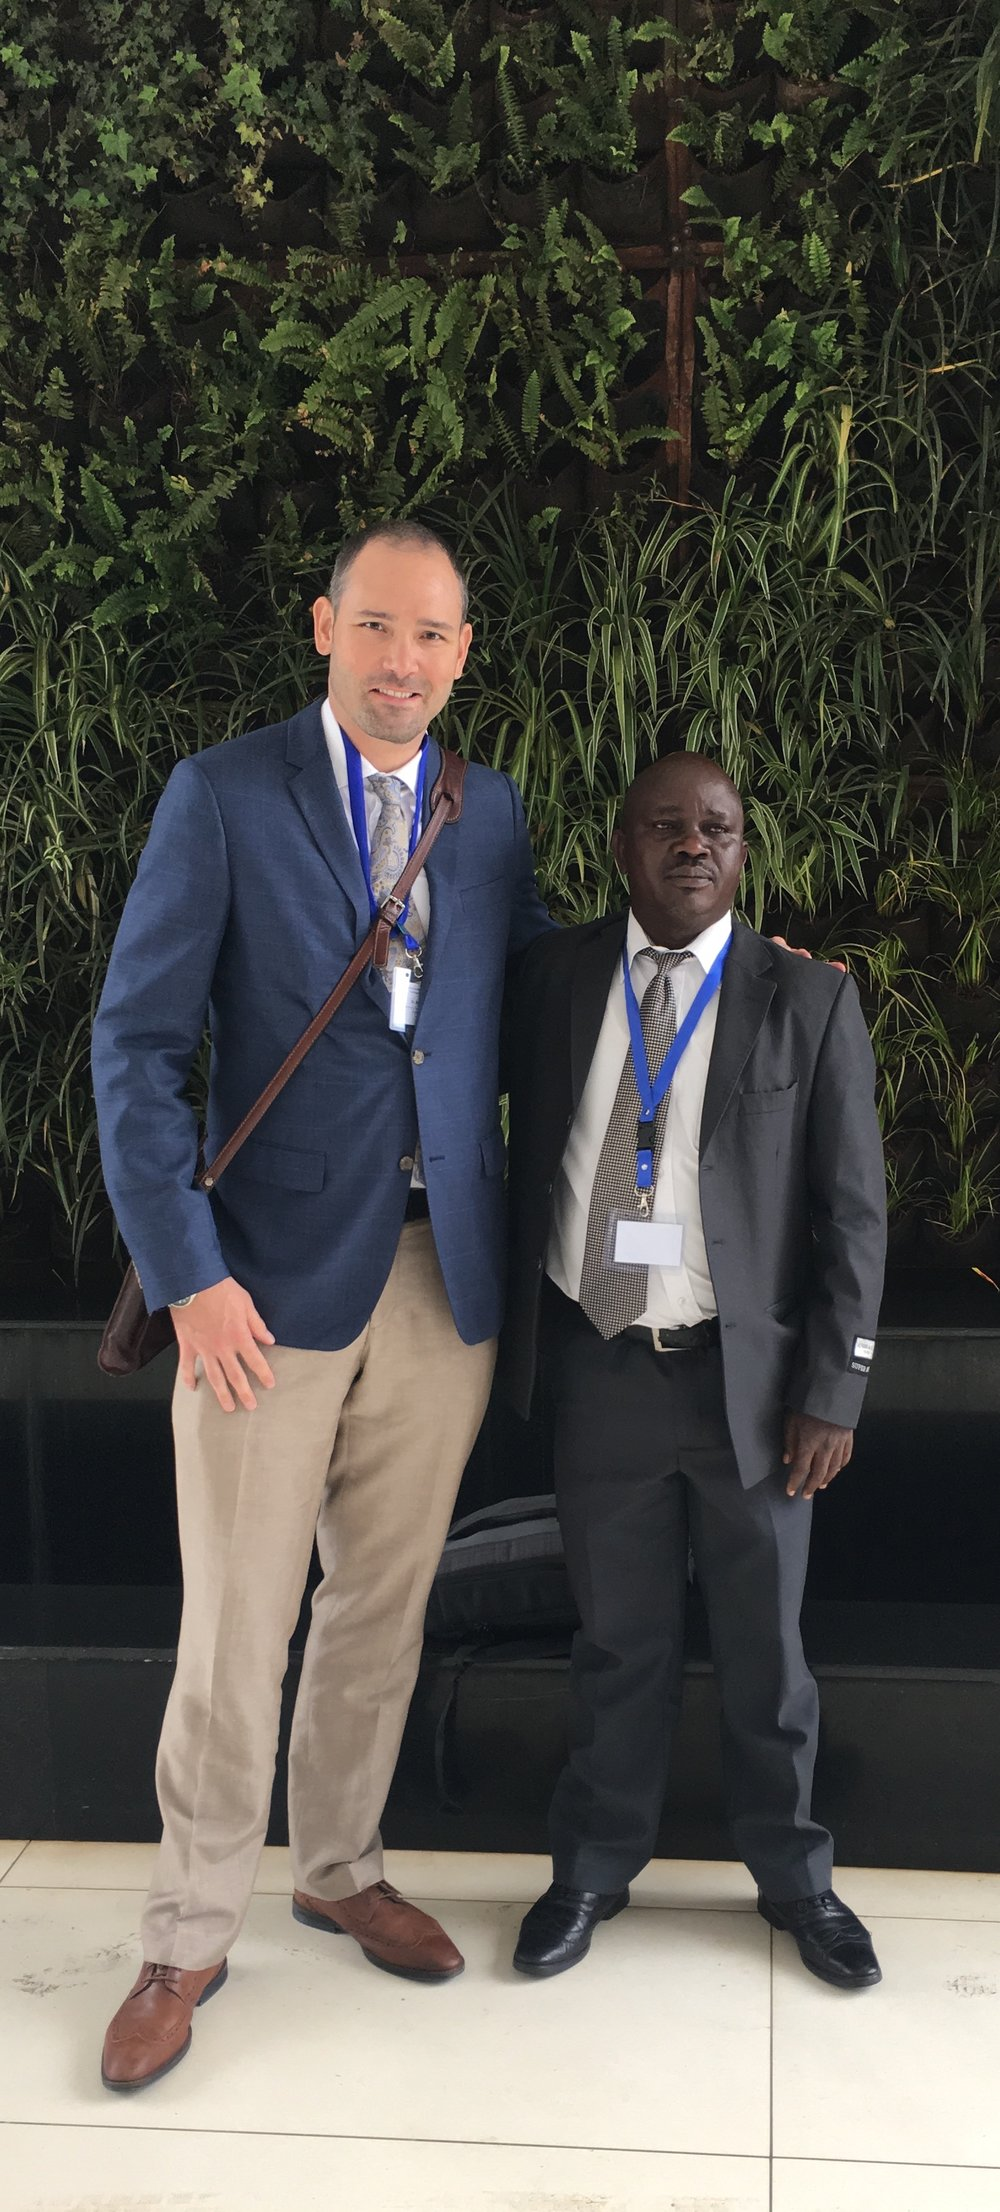 Image 3:Brent Elder of Rowan University and Tangata Group (left) stands with Benson Oswago of the Ministry of Education in Kenya (right).